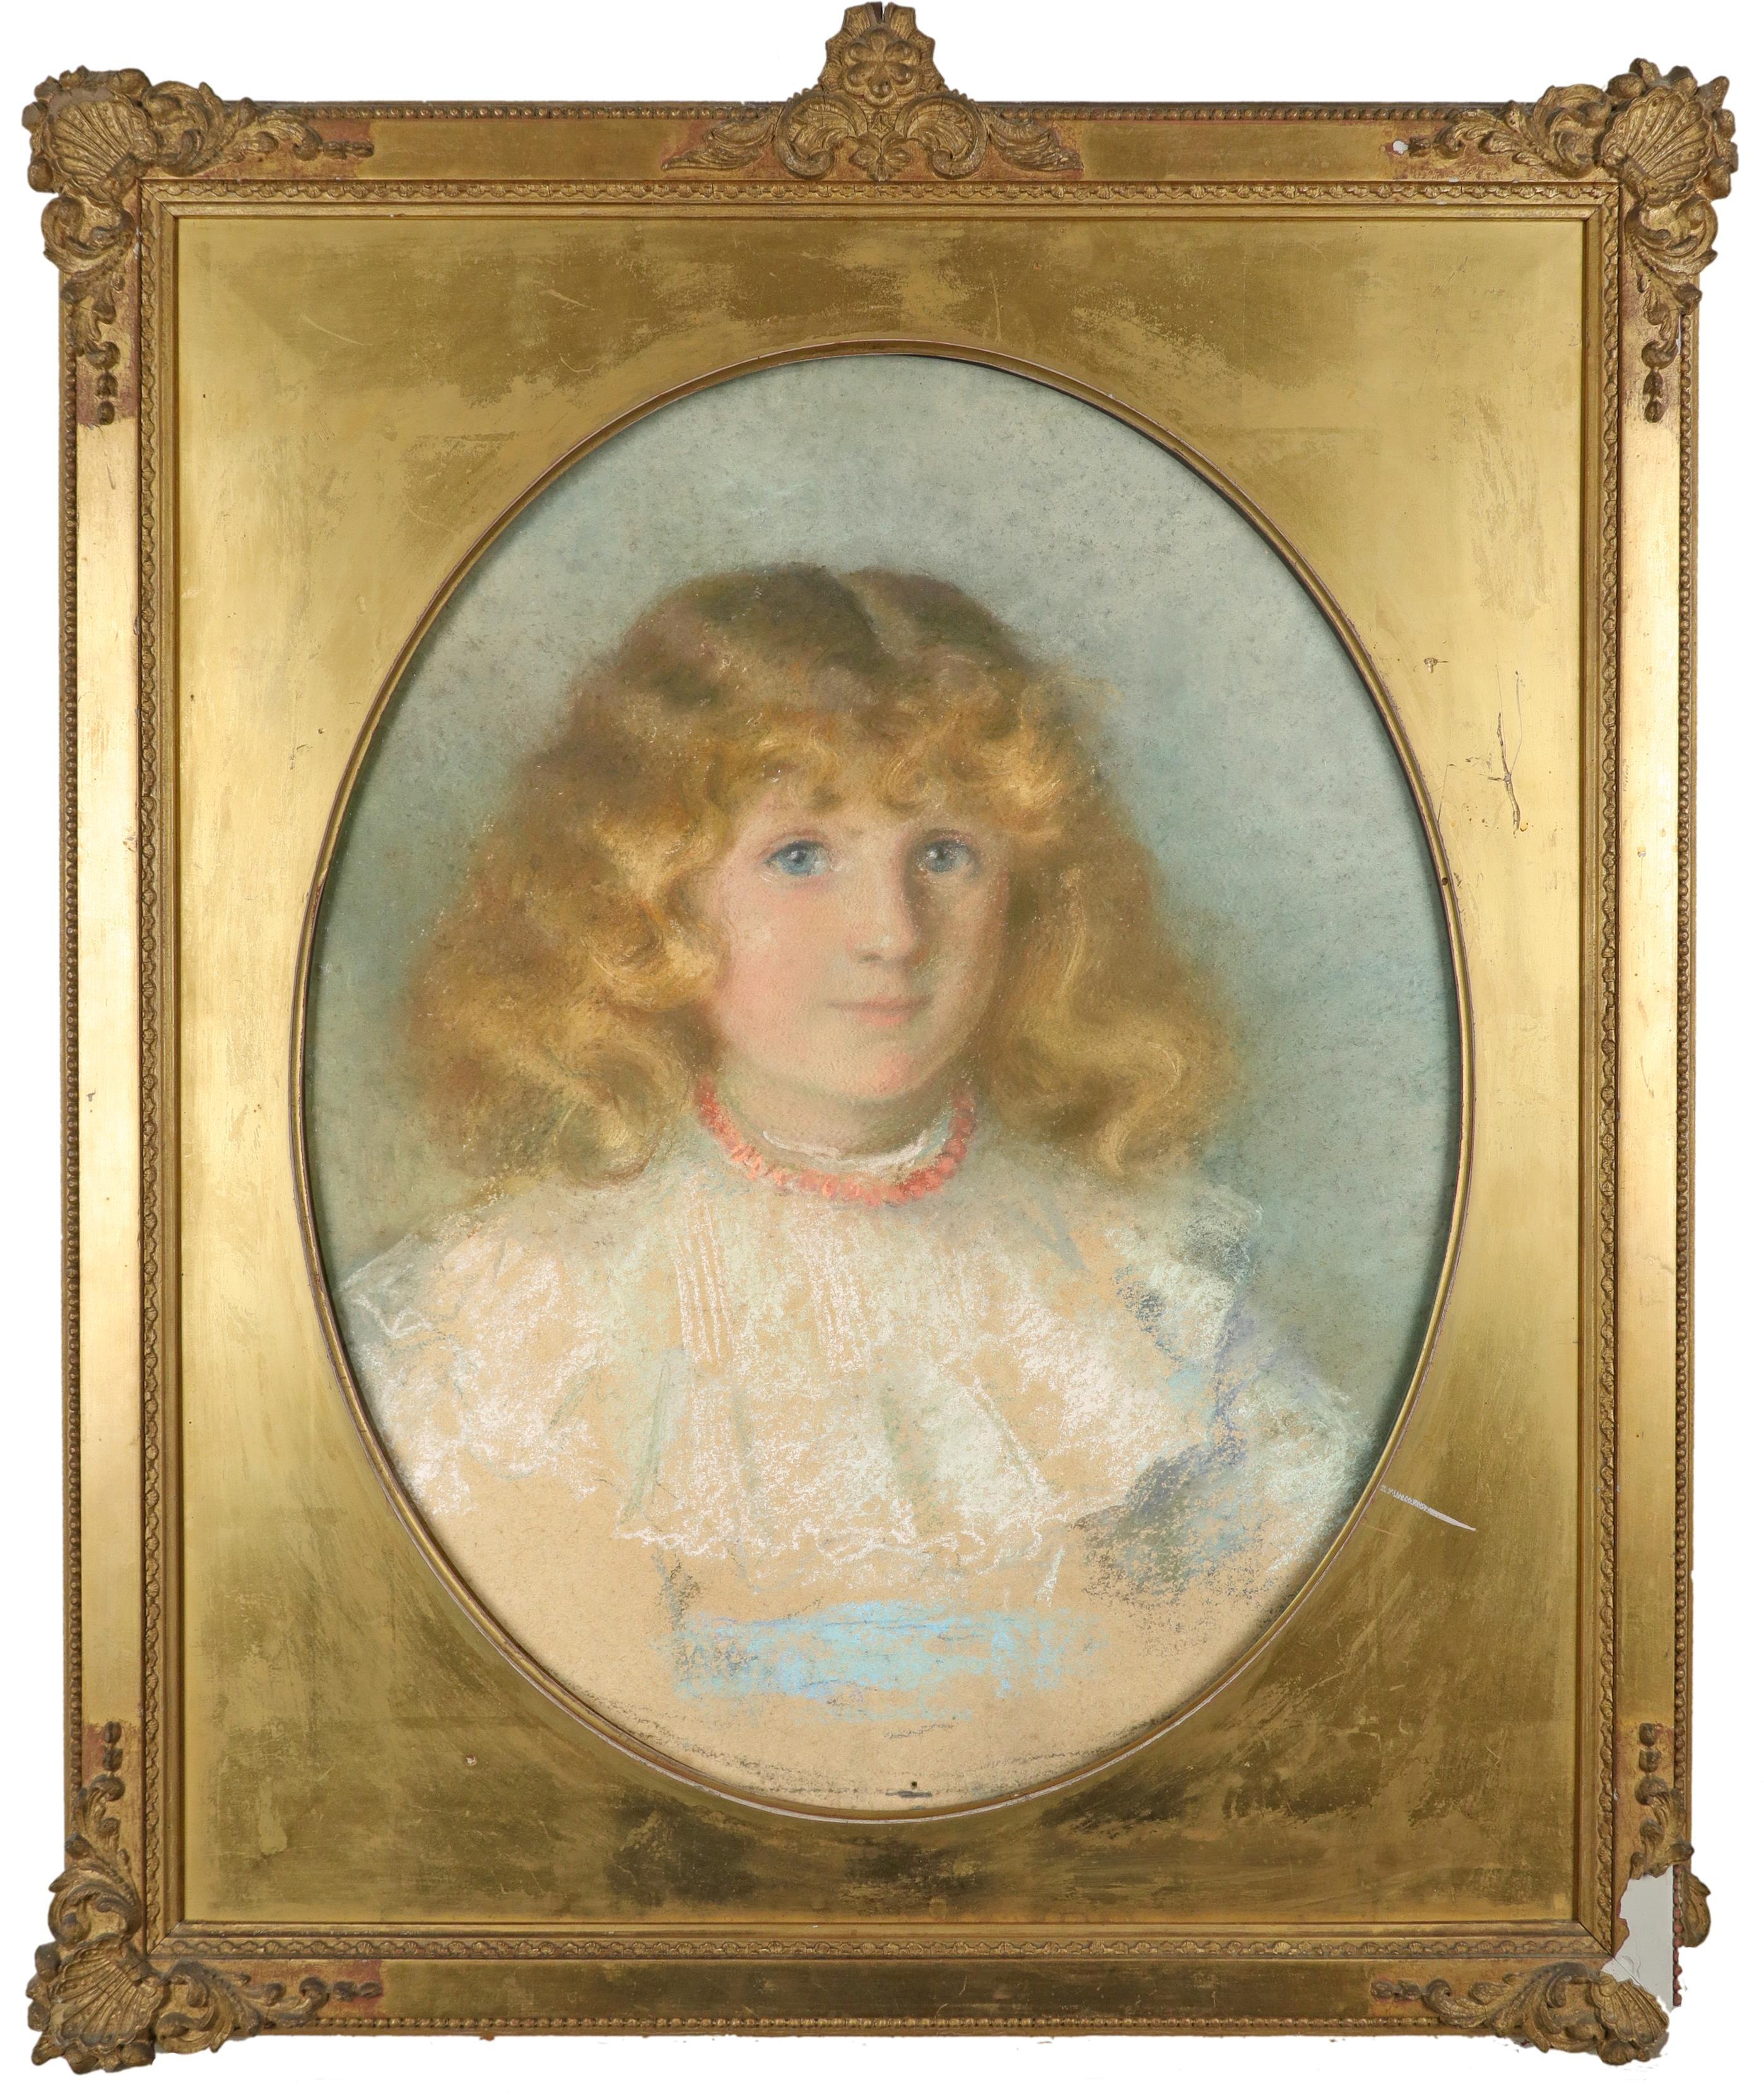 British School 1900 Portrait of a boy in a sailor suit; Portrait of a girl in a blue dress with lace - Image 5 of 6